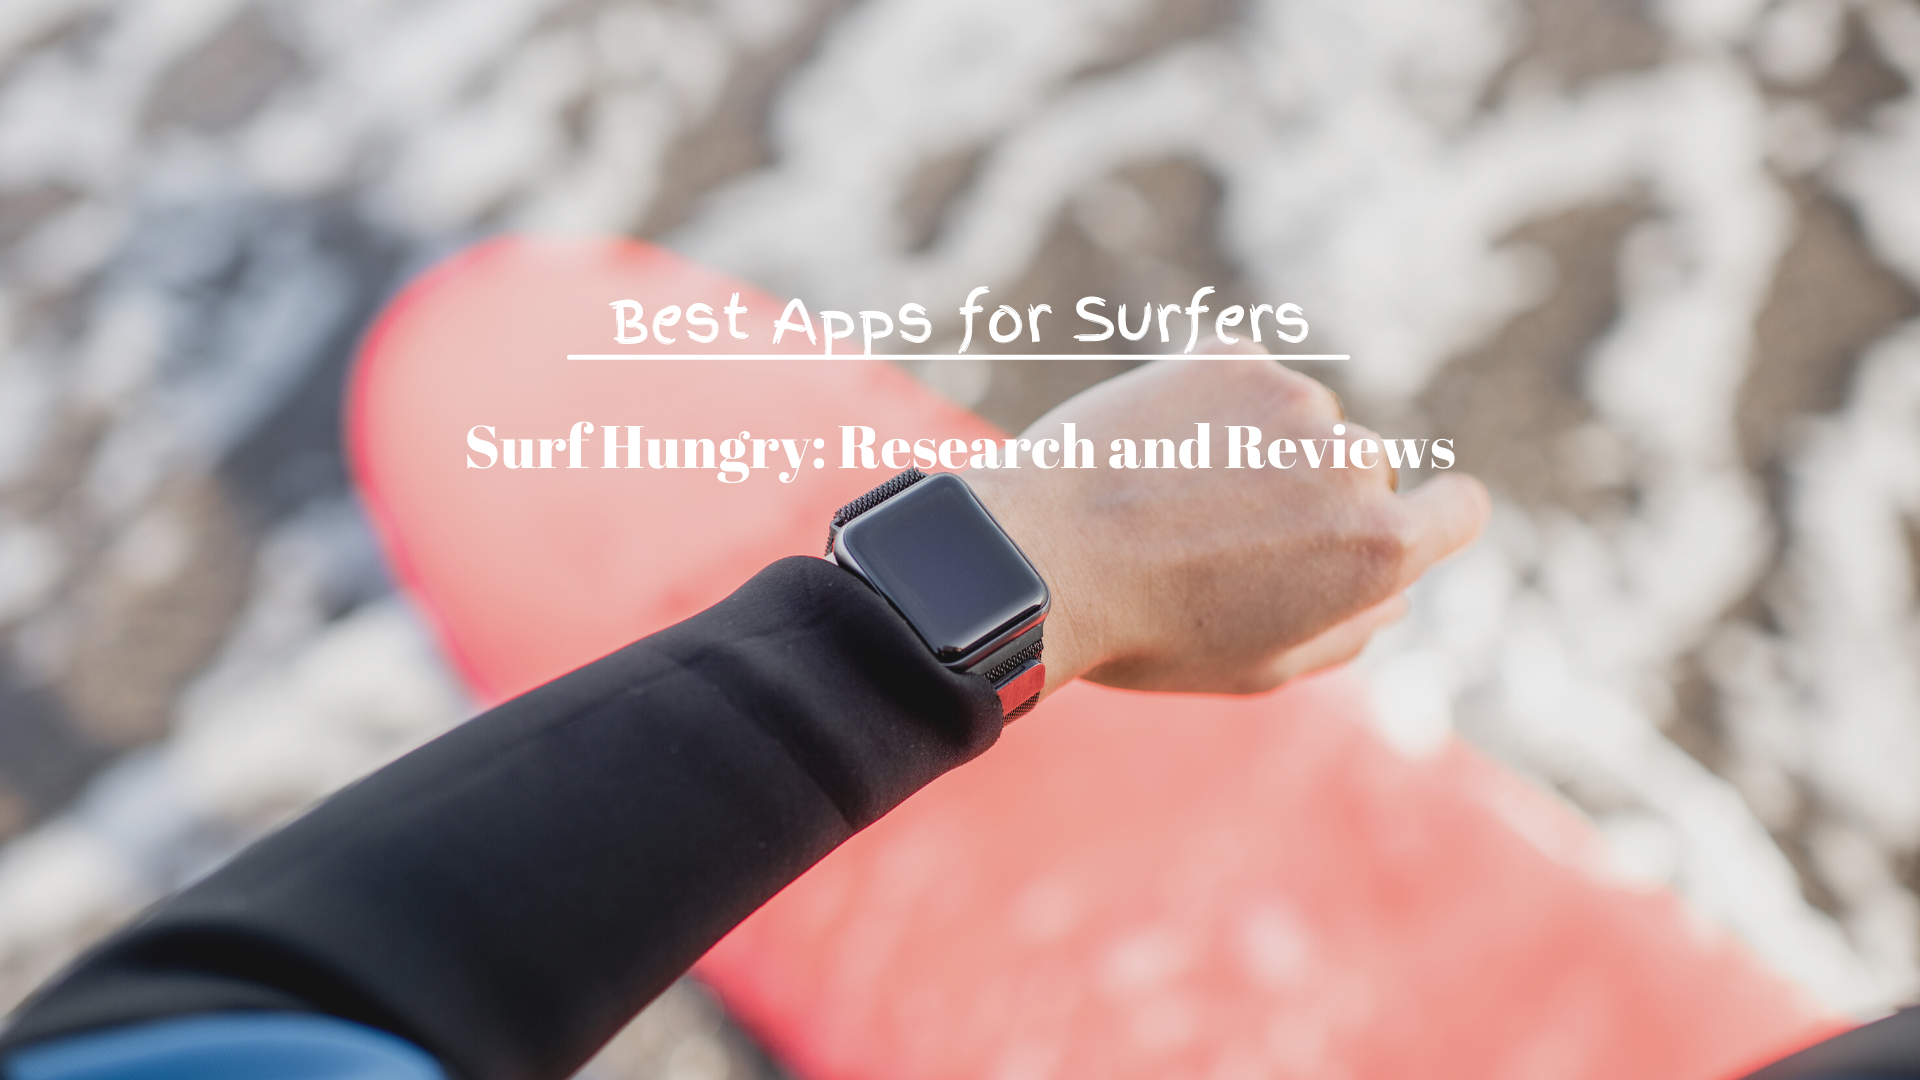 Best Apps for Surfers